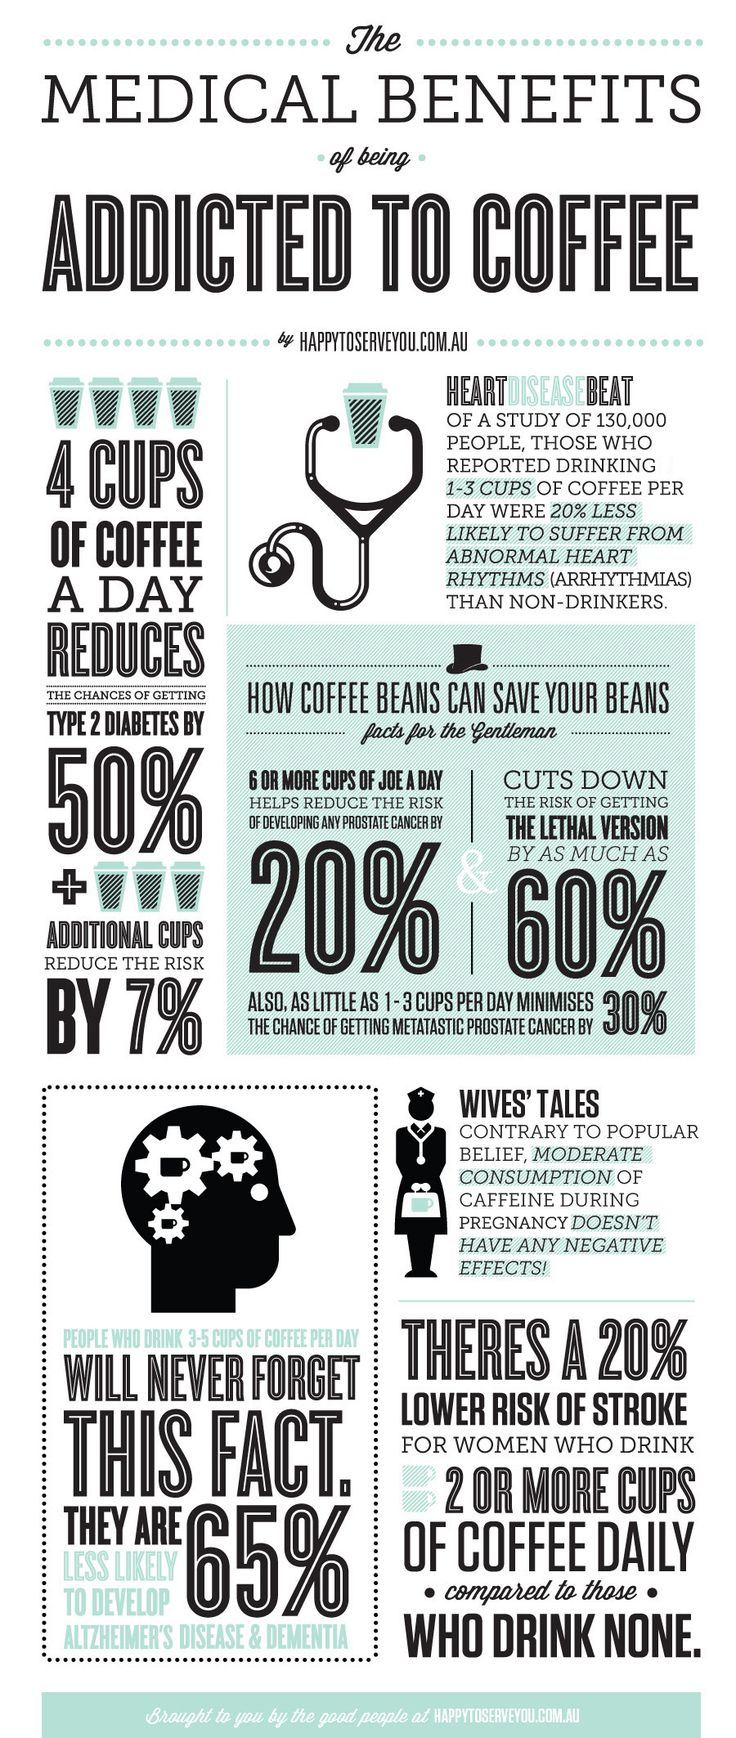 the medical benefits of being addicted to coffee - Happy to Serve You - Melbourne Coffee Reviews